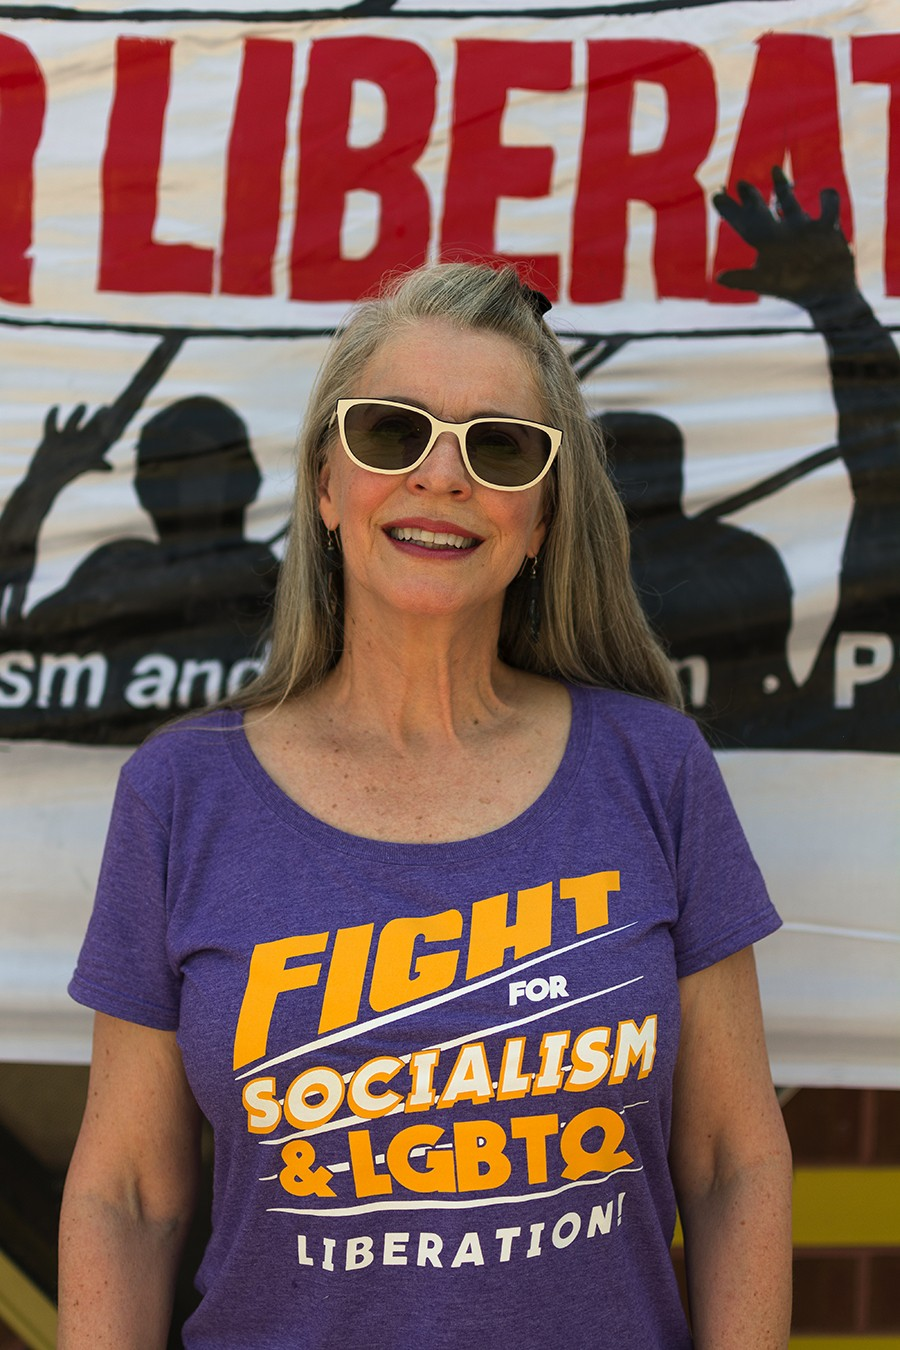 """Linda Winter: """"My heart's in the revolution. My heart is for the full rights of all people. And I don't see how that will happen under capitalism. We're seeing examples right now how, you know, rights that were won in the 60s are now being eroded, and taken away. And [I believe in] a revolution for the people."""" - ROBYN DAY"""